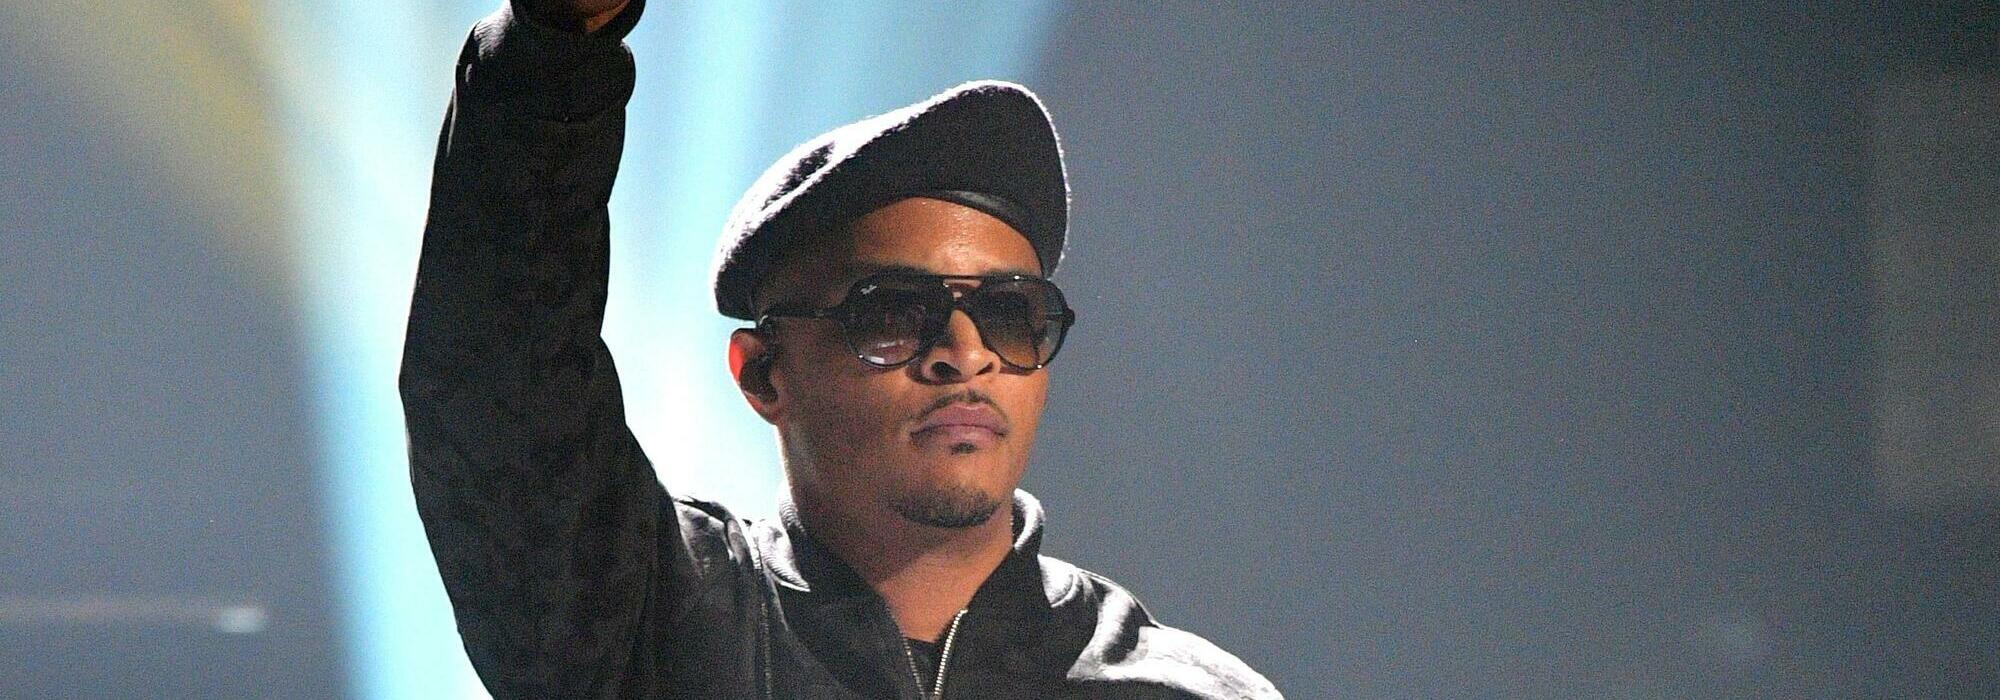 A T.I. live event